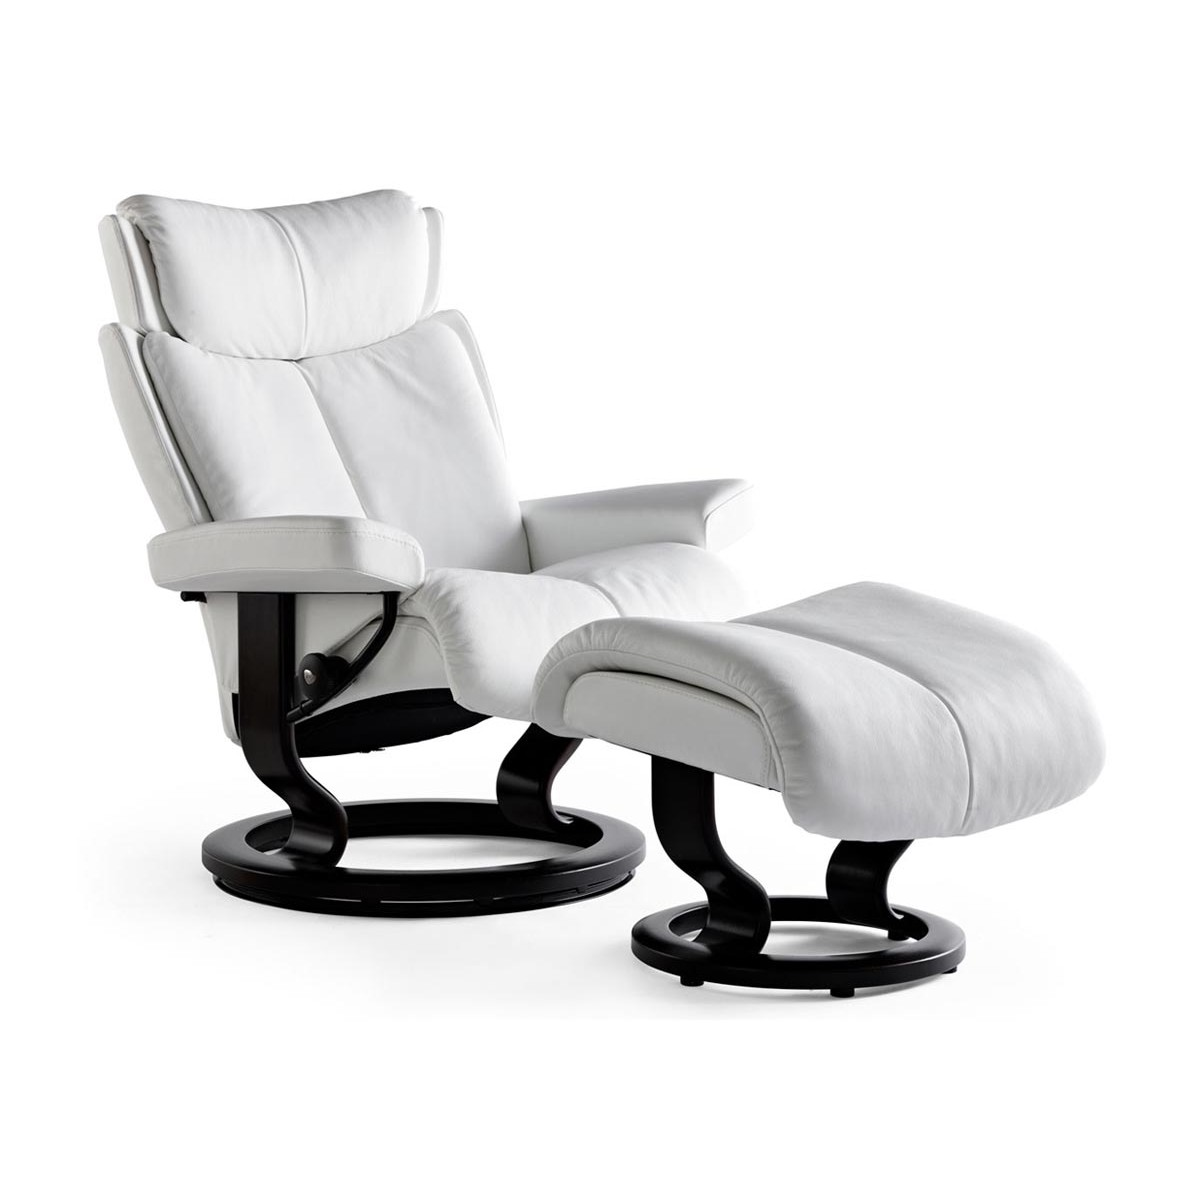 Stressless Recliners With Ottoman Stressless Magic Classic Recliner And Ottoman From 3 295 00